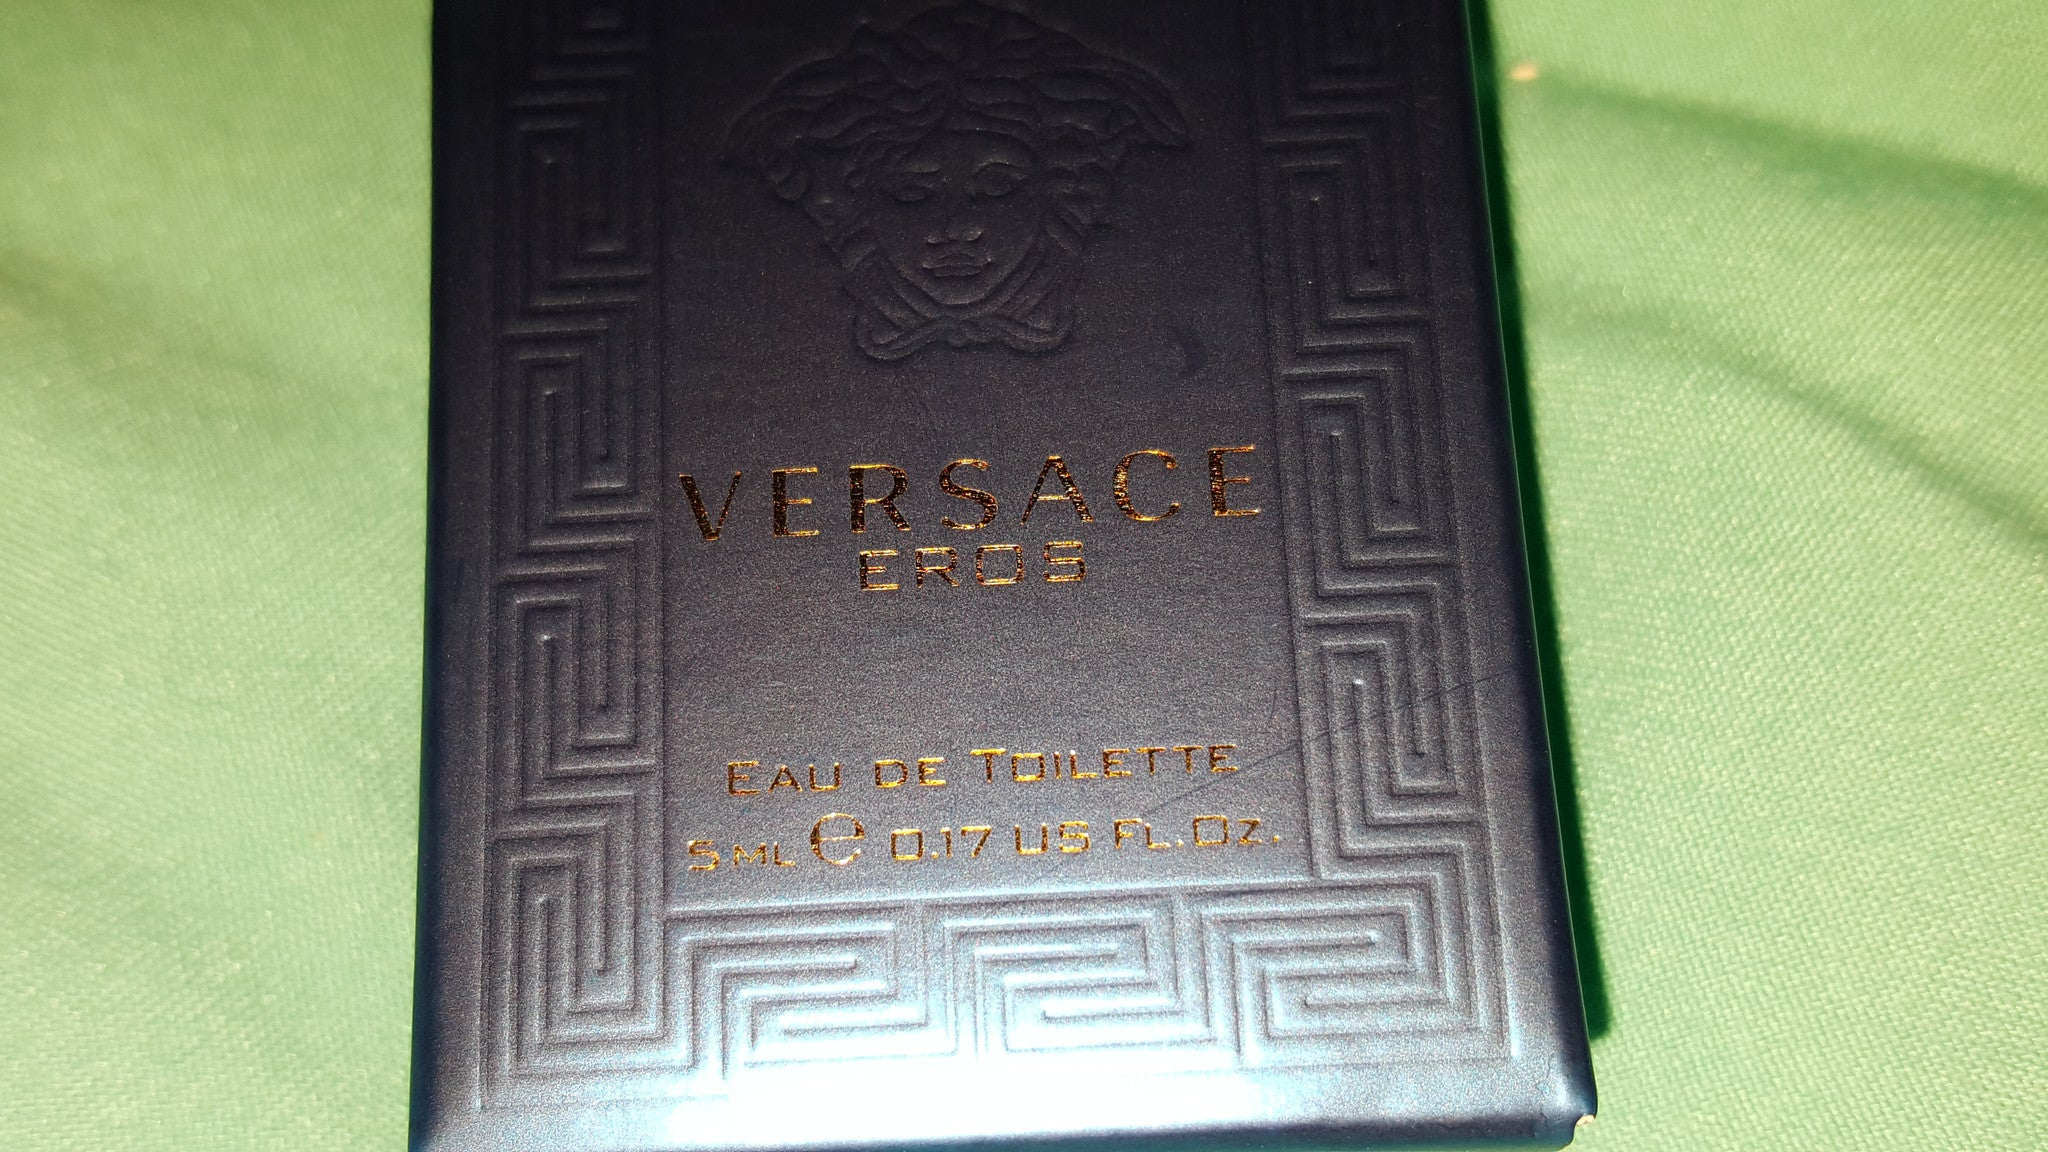 Versace eu da toilete - EROS -  New Fashion Finds By Carole